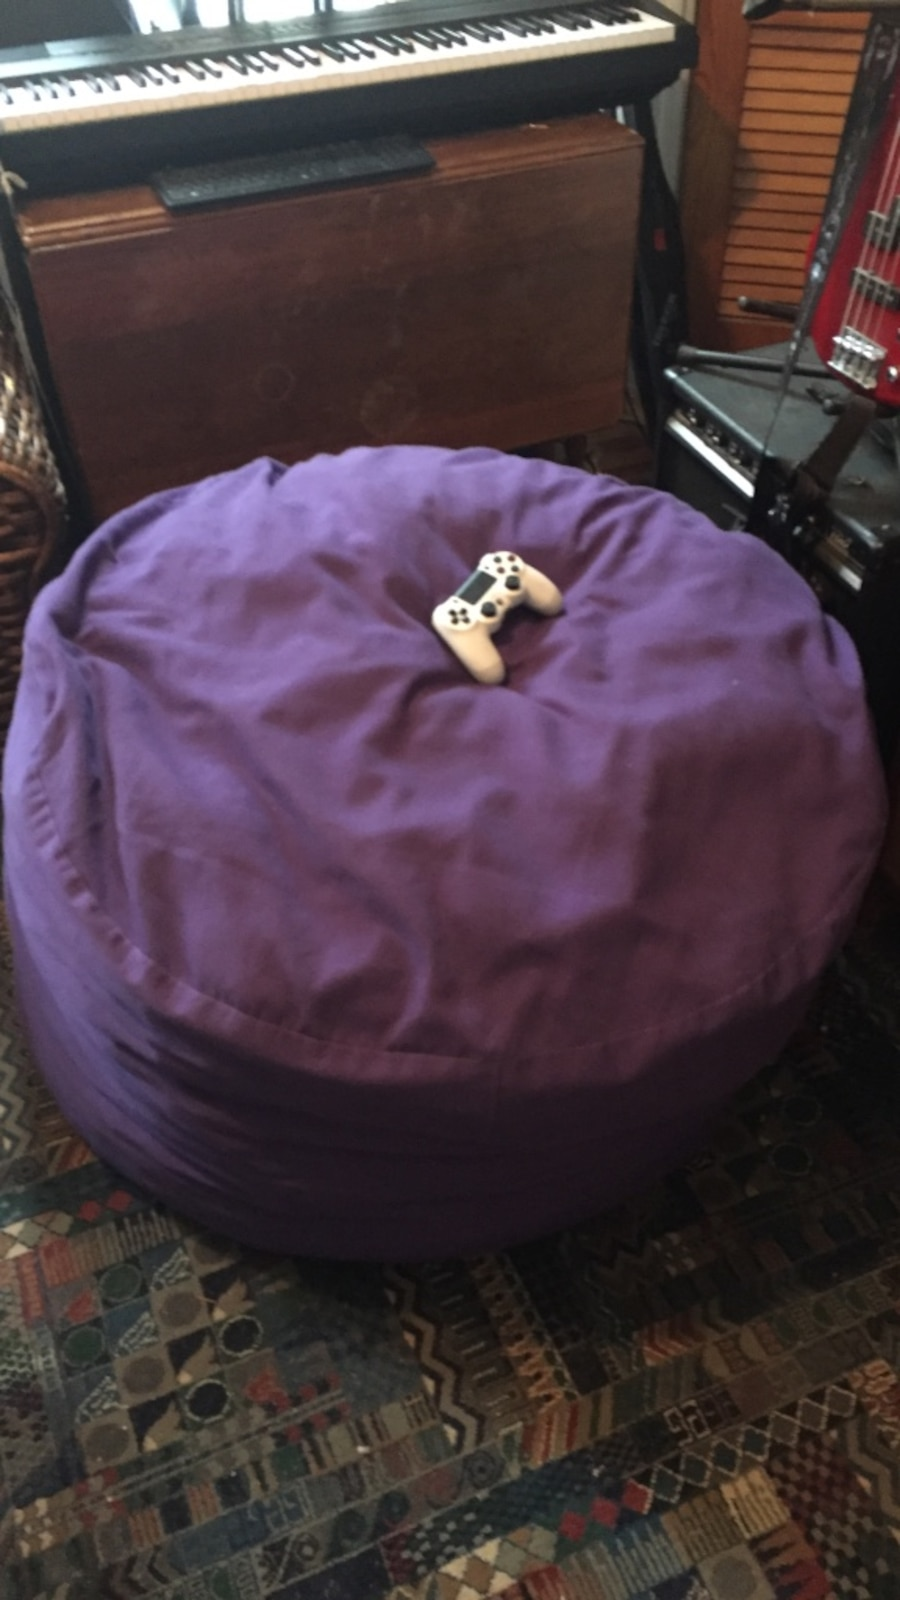 foof chair ps4 controller for scale in new york letgo